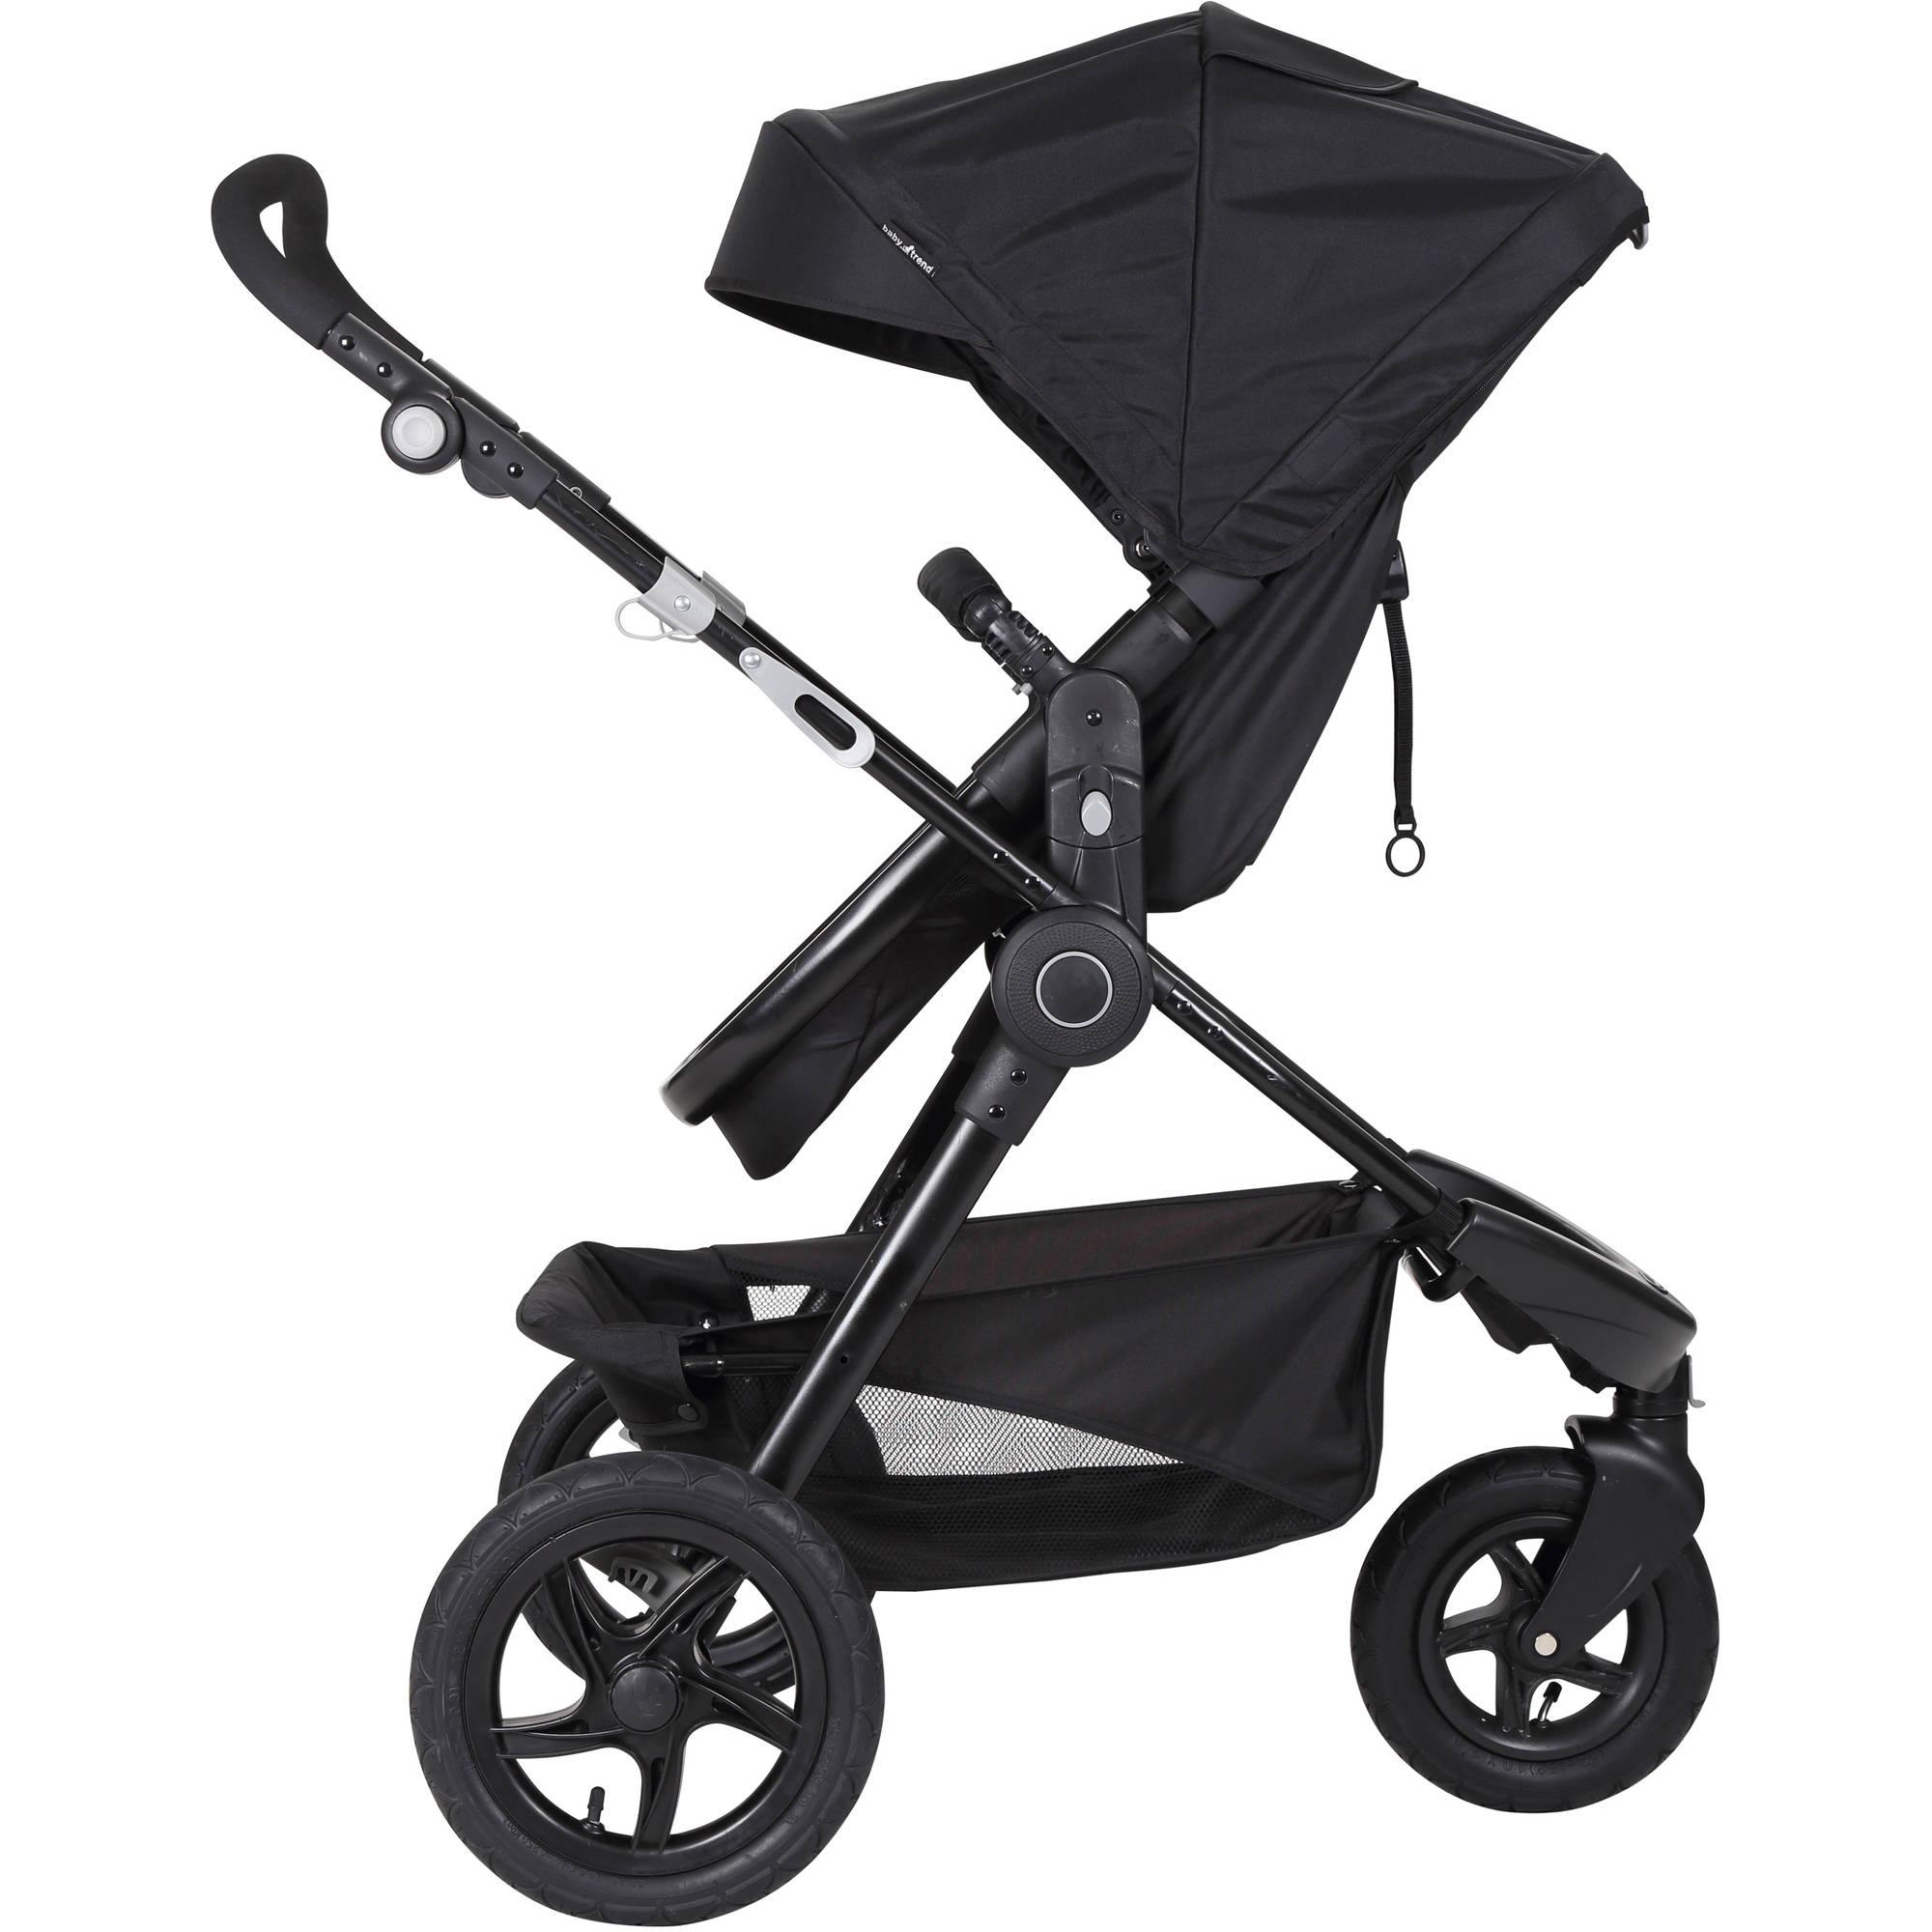 Stroller Baby Trend Double Specification Pdf Roma Tomato